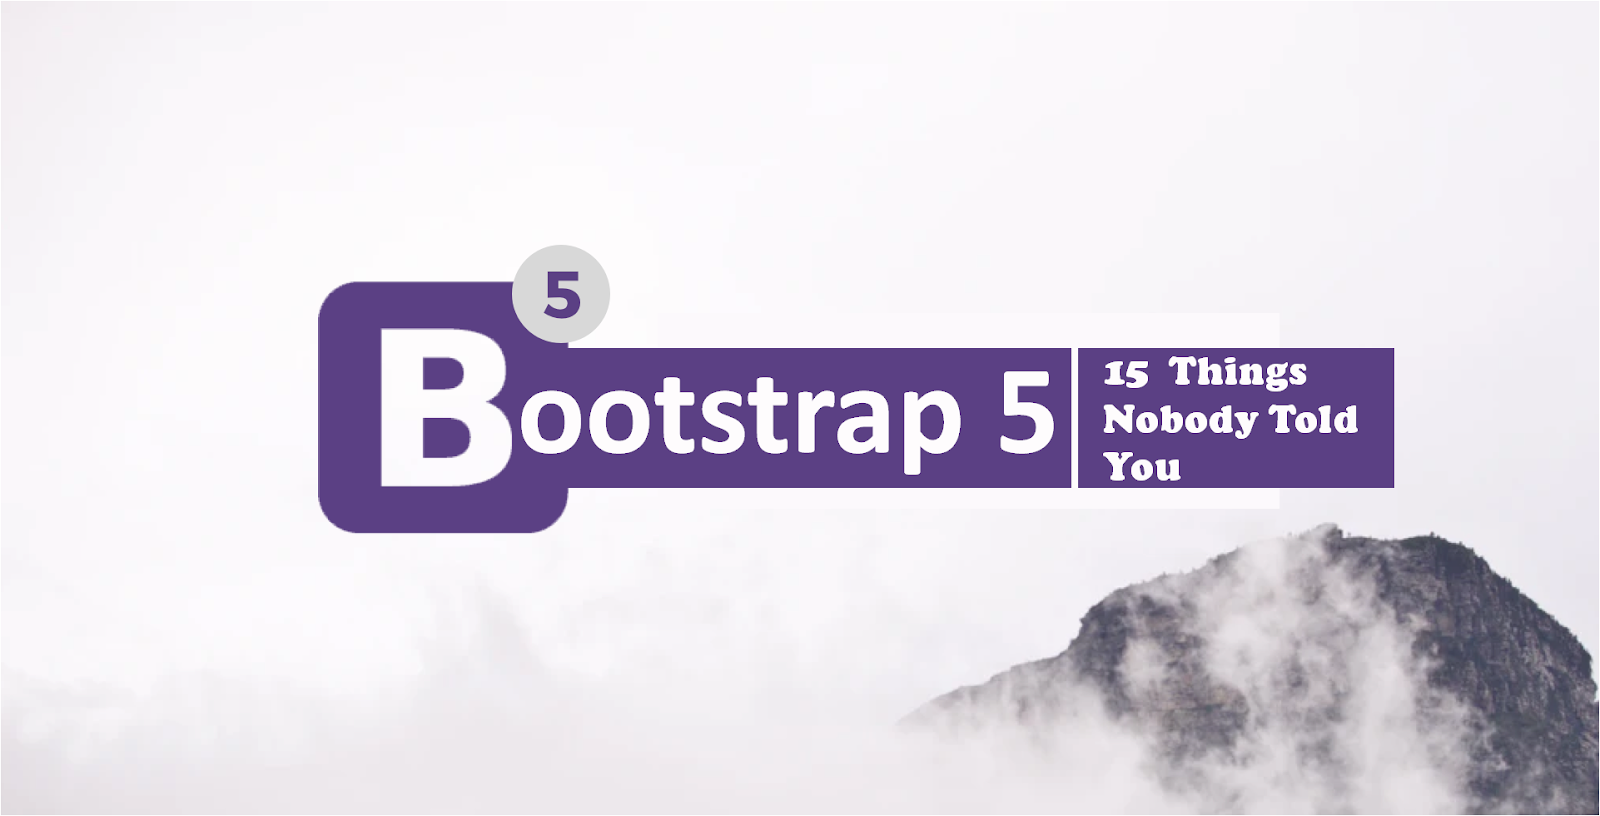 15 Things Nobody Told You About Bootstrap 5